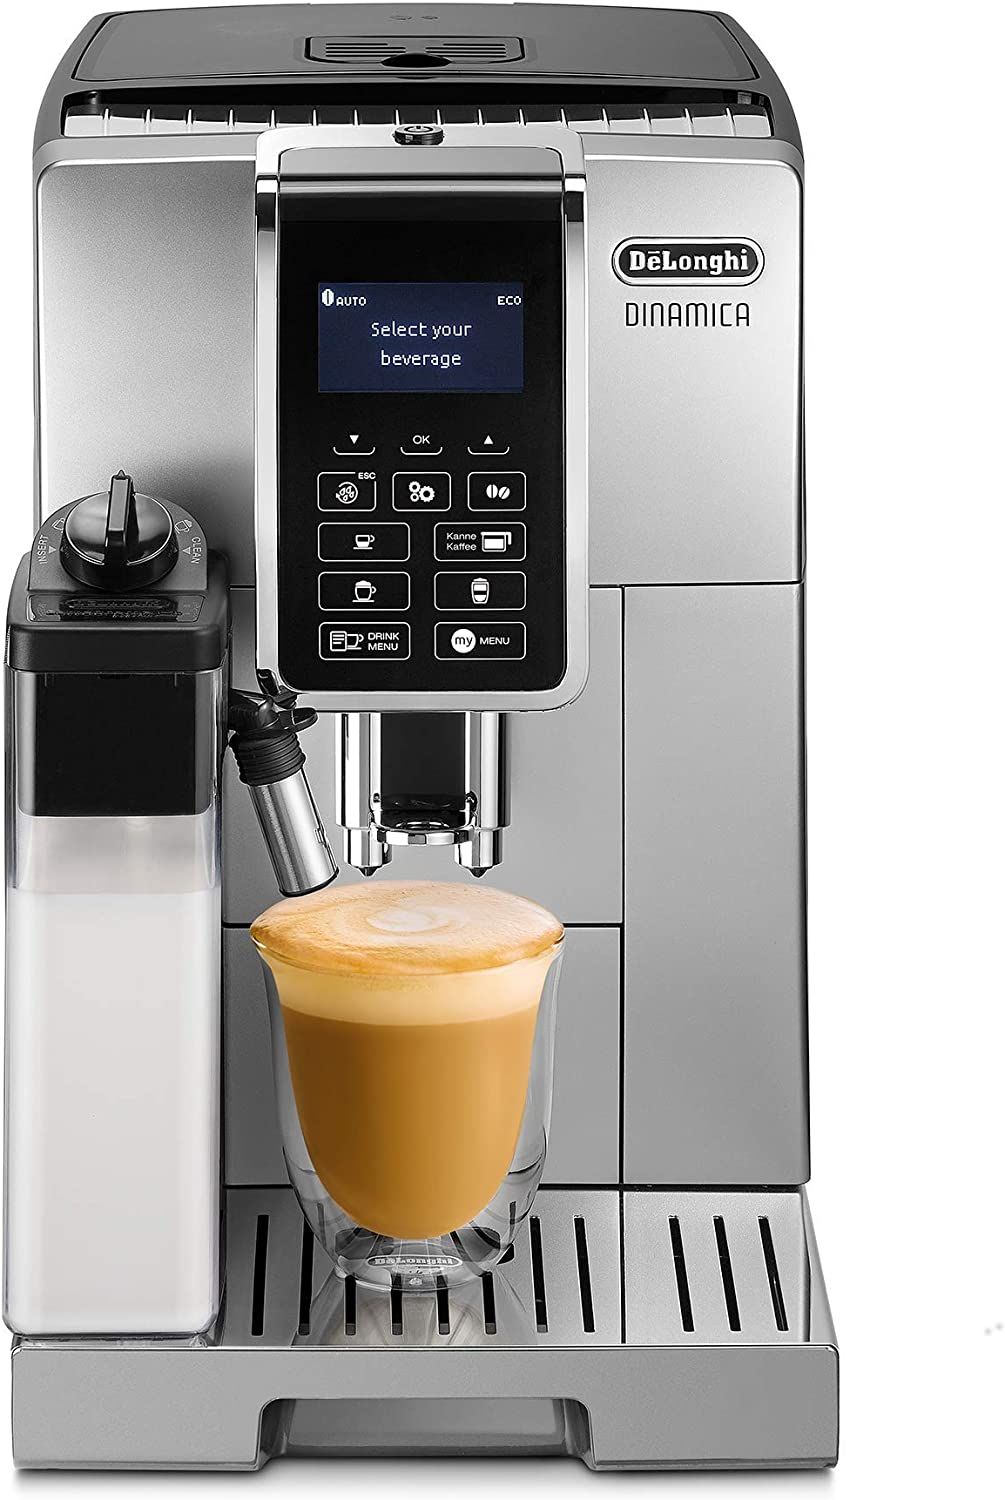 DeLonghi Dedica Style Dinamica Ecam Independiente Totalmente automática Máquina espresso Acero inoxidable - Cafetera (Independiente, Máquina espresso, Granos de café, De café molido, Molinillo integrado, 1450 W, Acero inoxidable): Amazon.es: Hogar